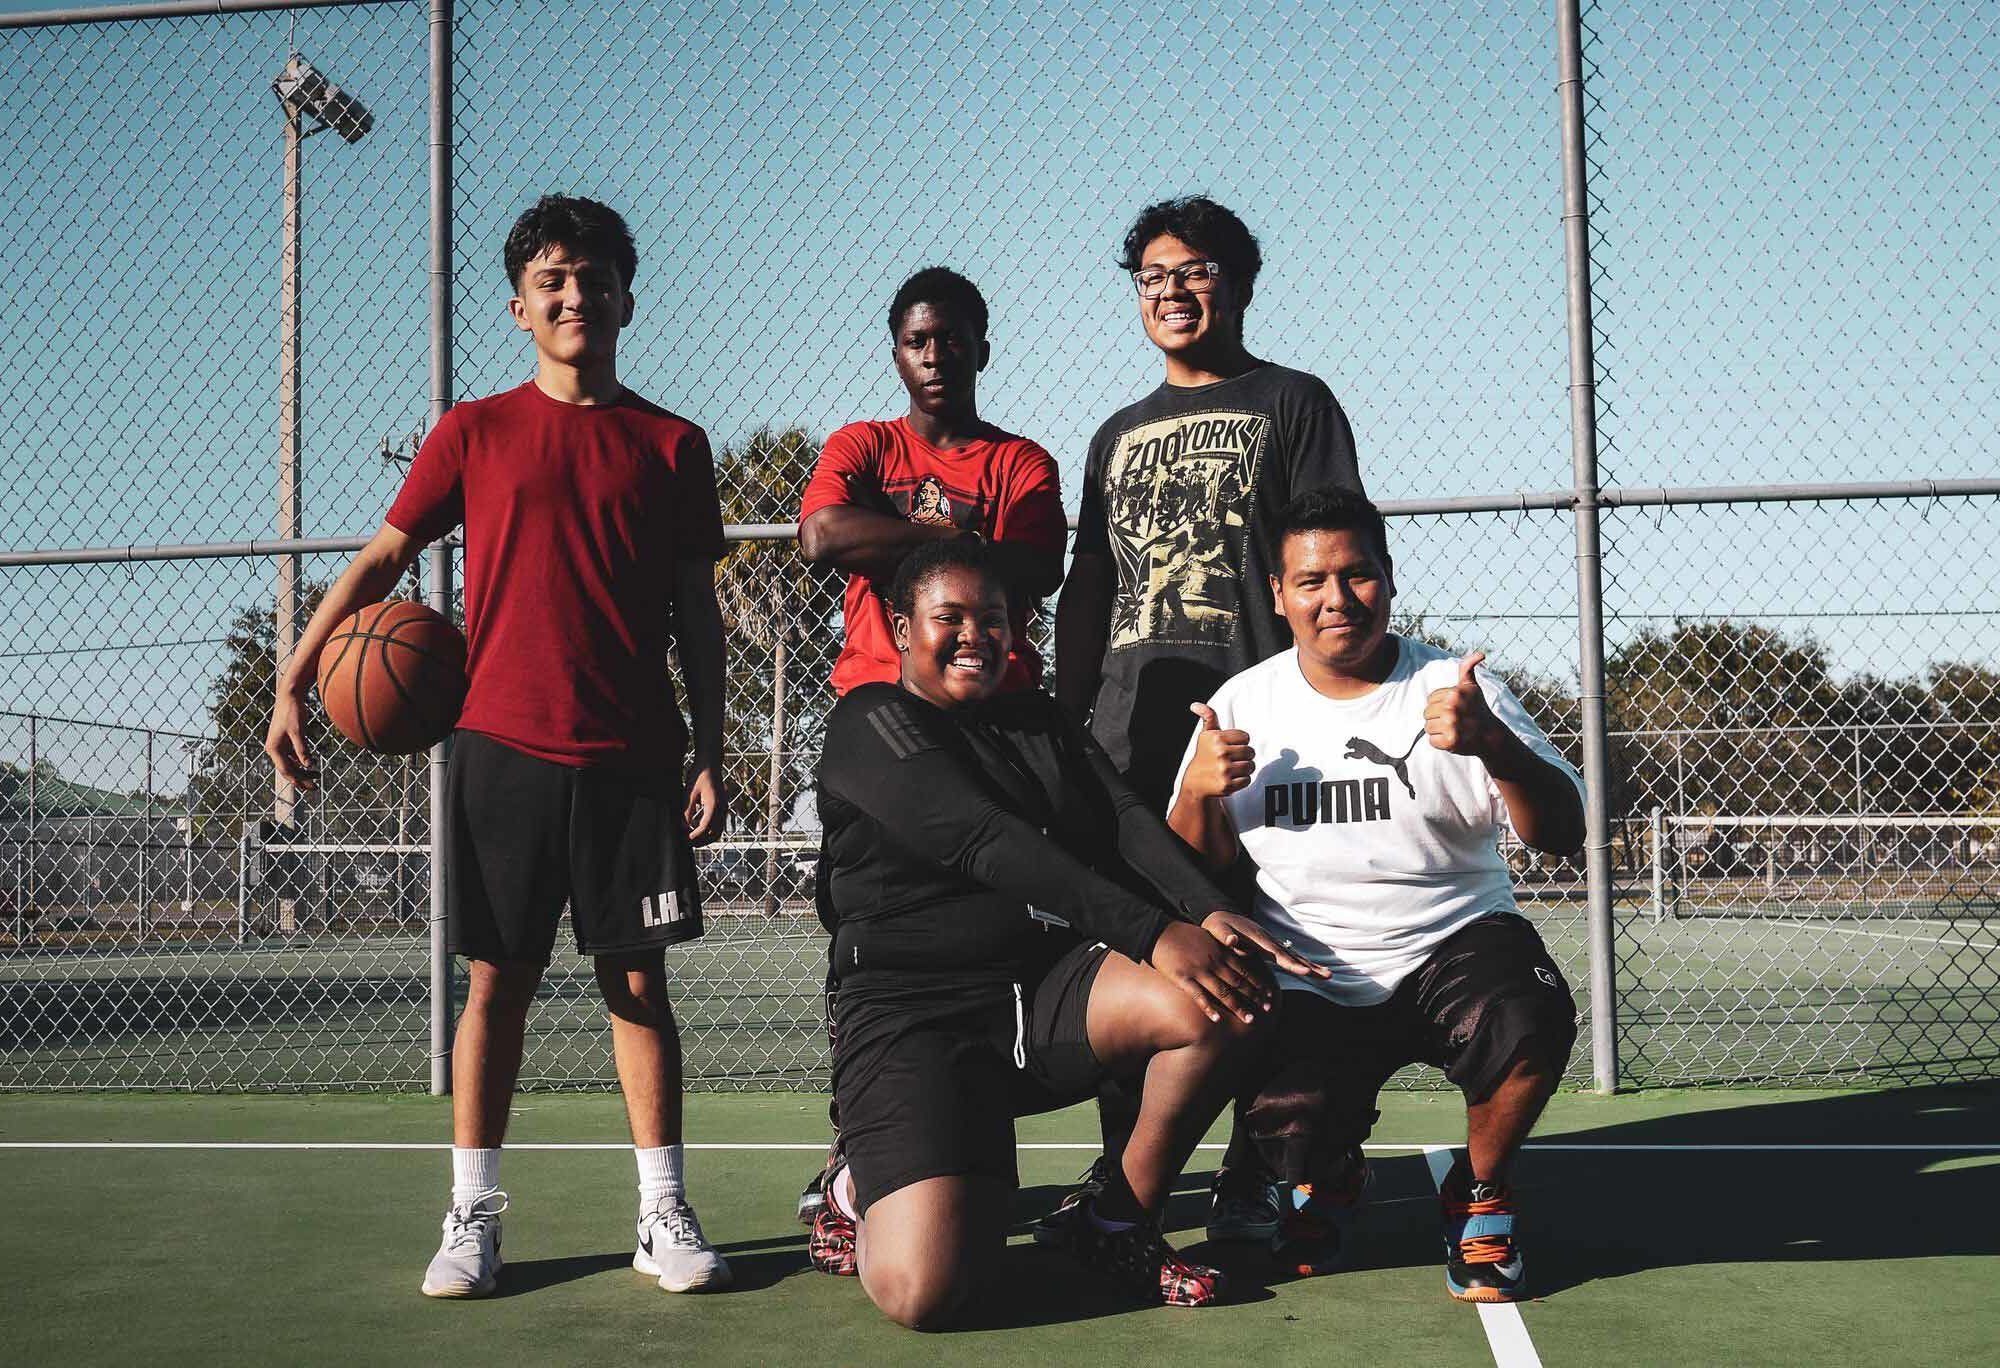 Students smiling for the camera on a basketball court.